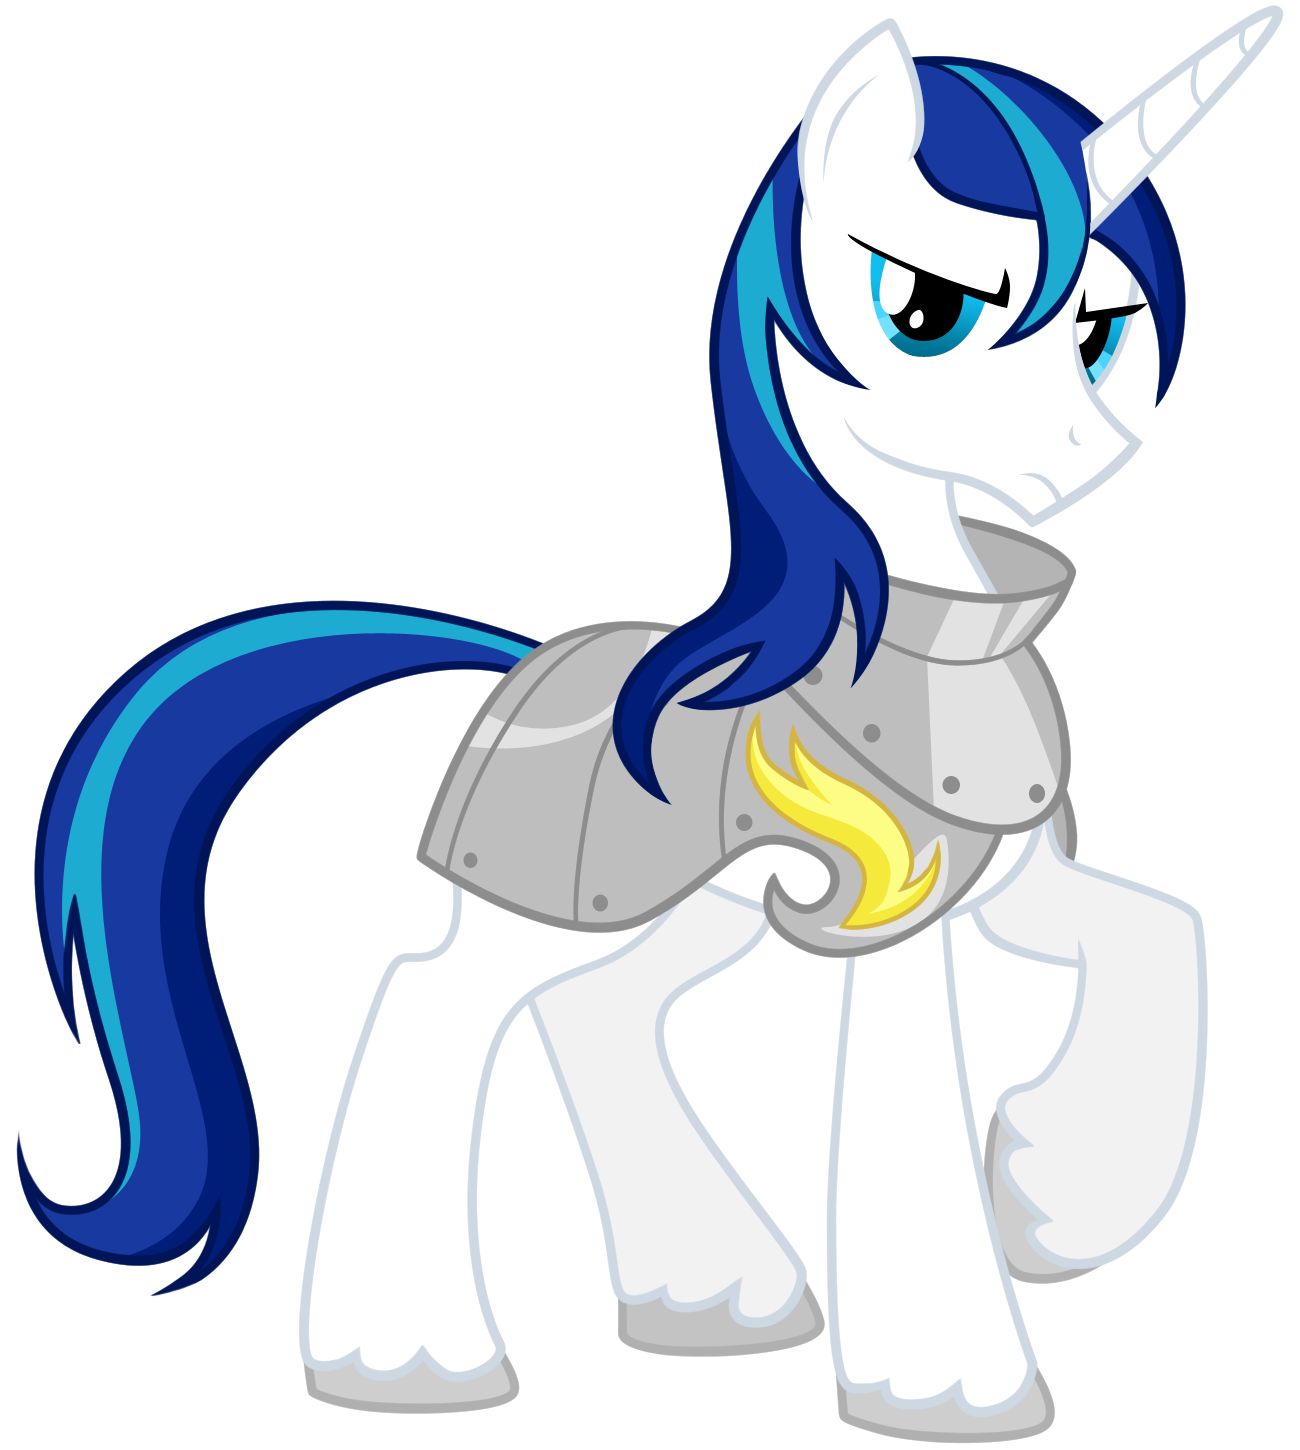 My little pony prince shining armor - photo#21